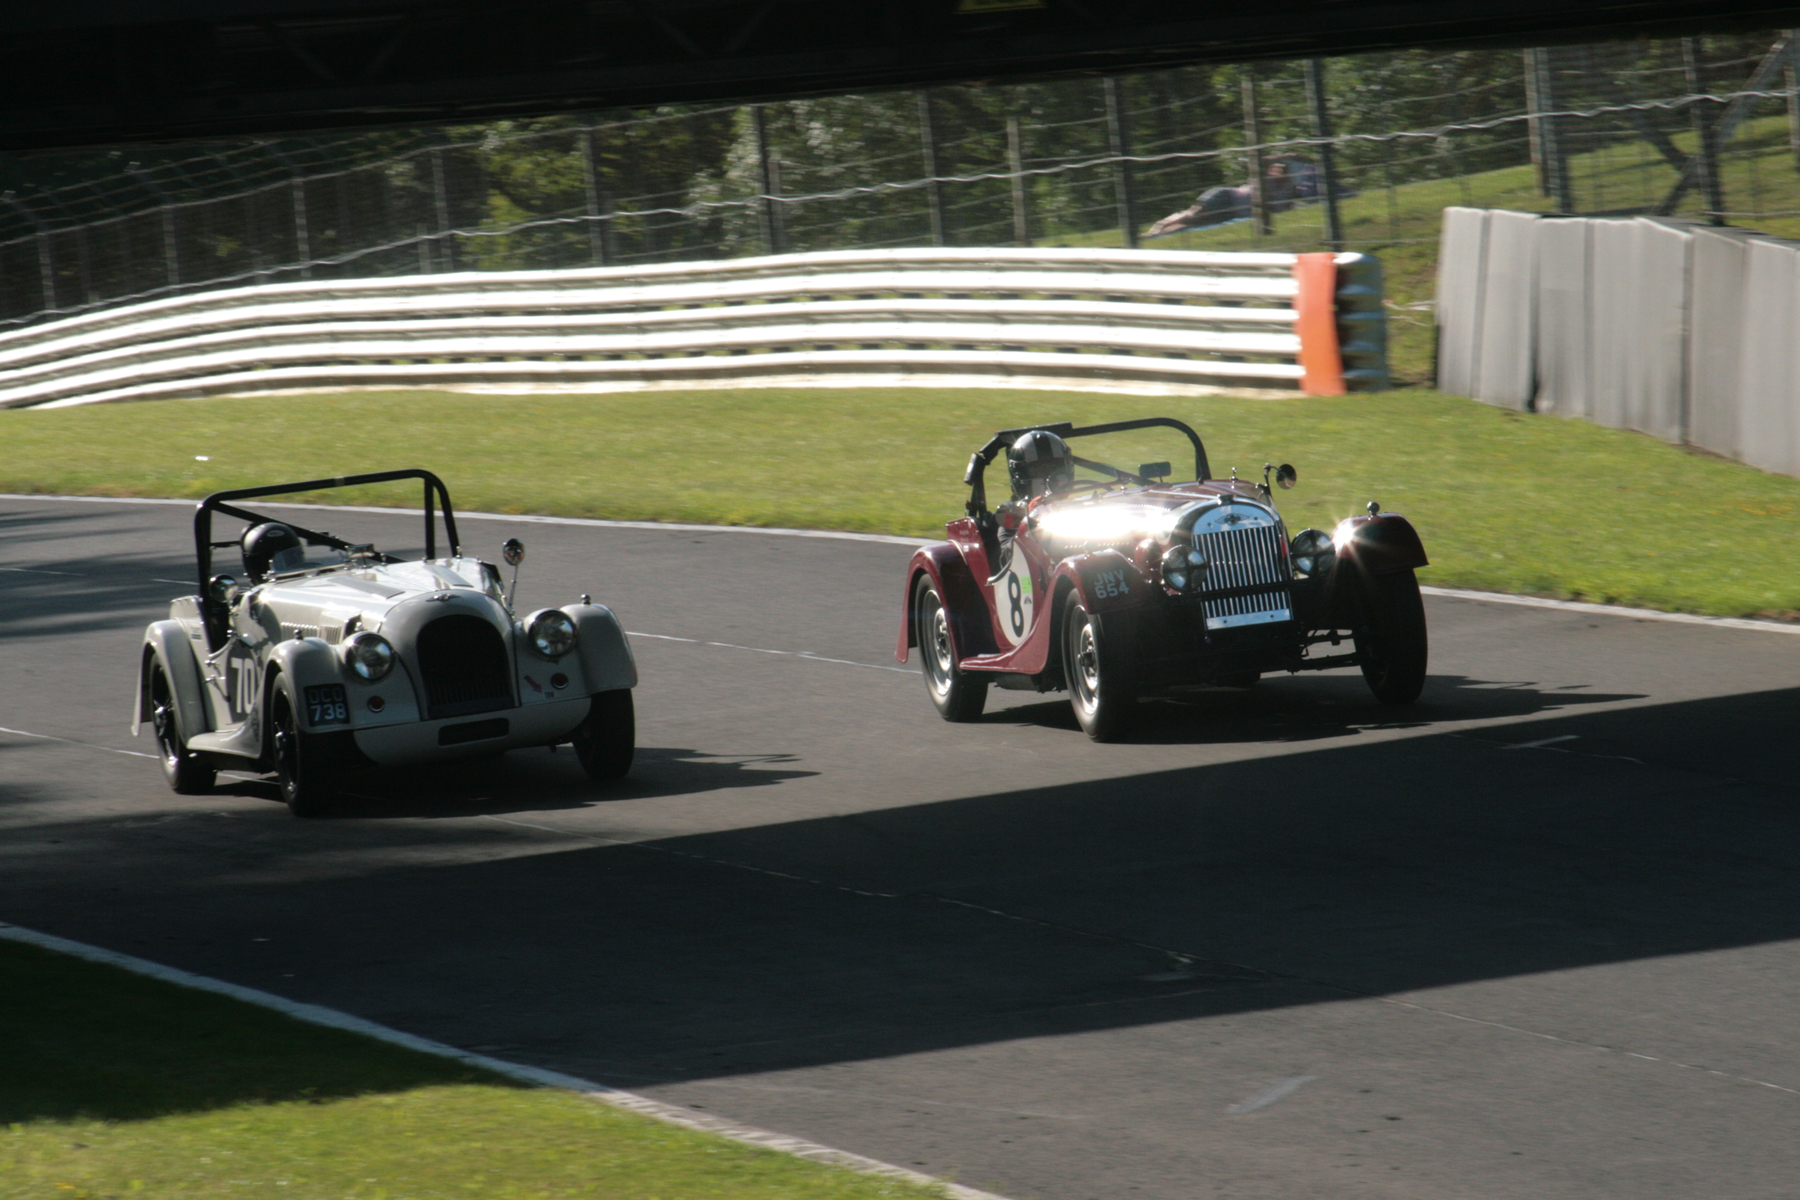 Alan House takes his Morgan +4 (70) passed Leigh Sebba's earlier model (8) as they charge down Pilgrim's Drop and under the roadbridge. However, Alan was to retire at the end of the lap with power loss.